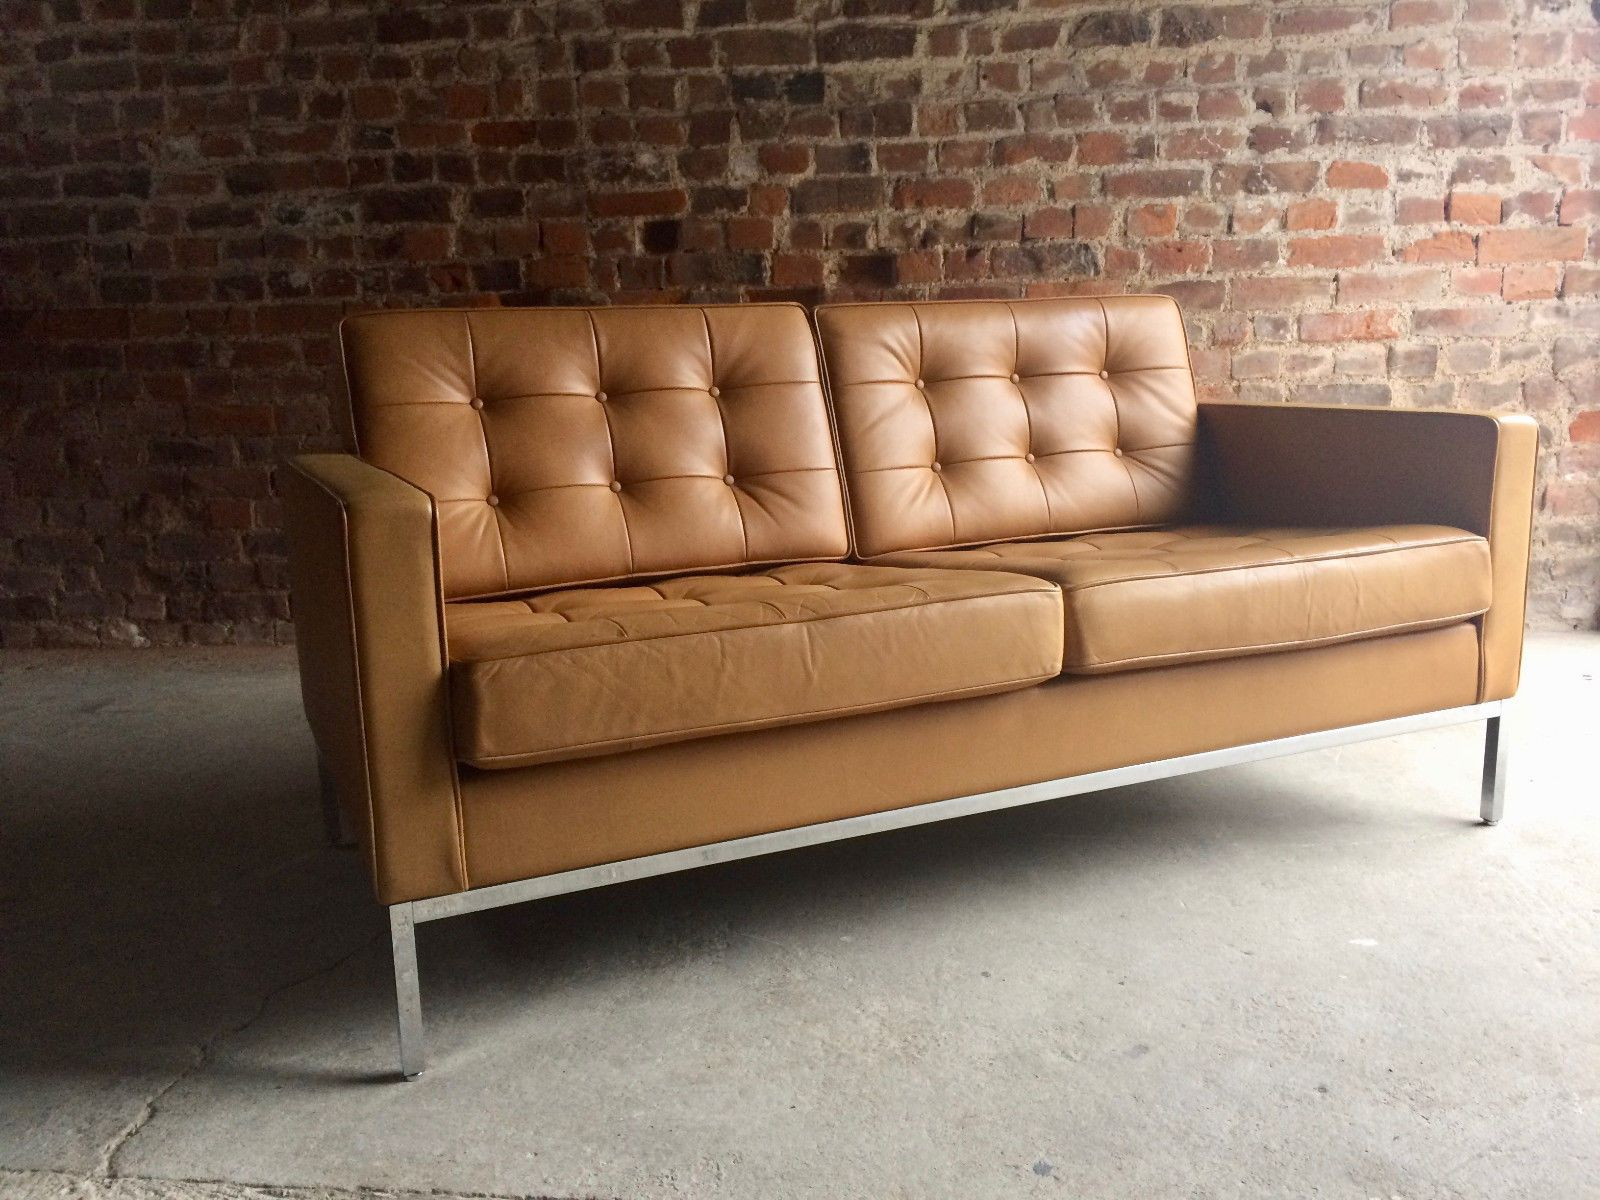 Préférence Vintage 2-Seater Leather Sofa by Florence Knoll for Knoll for sale  BV25